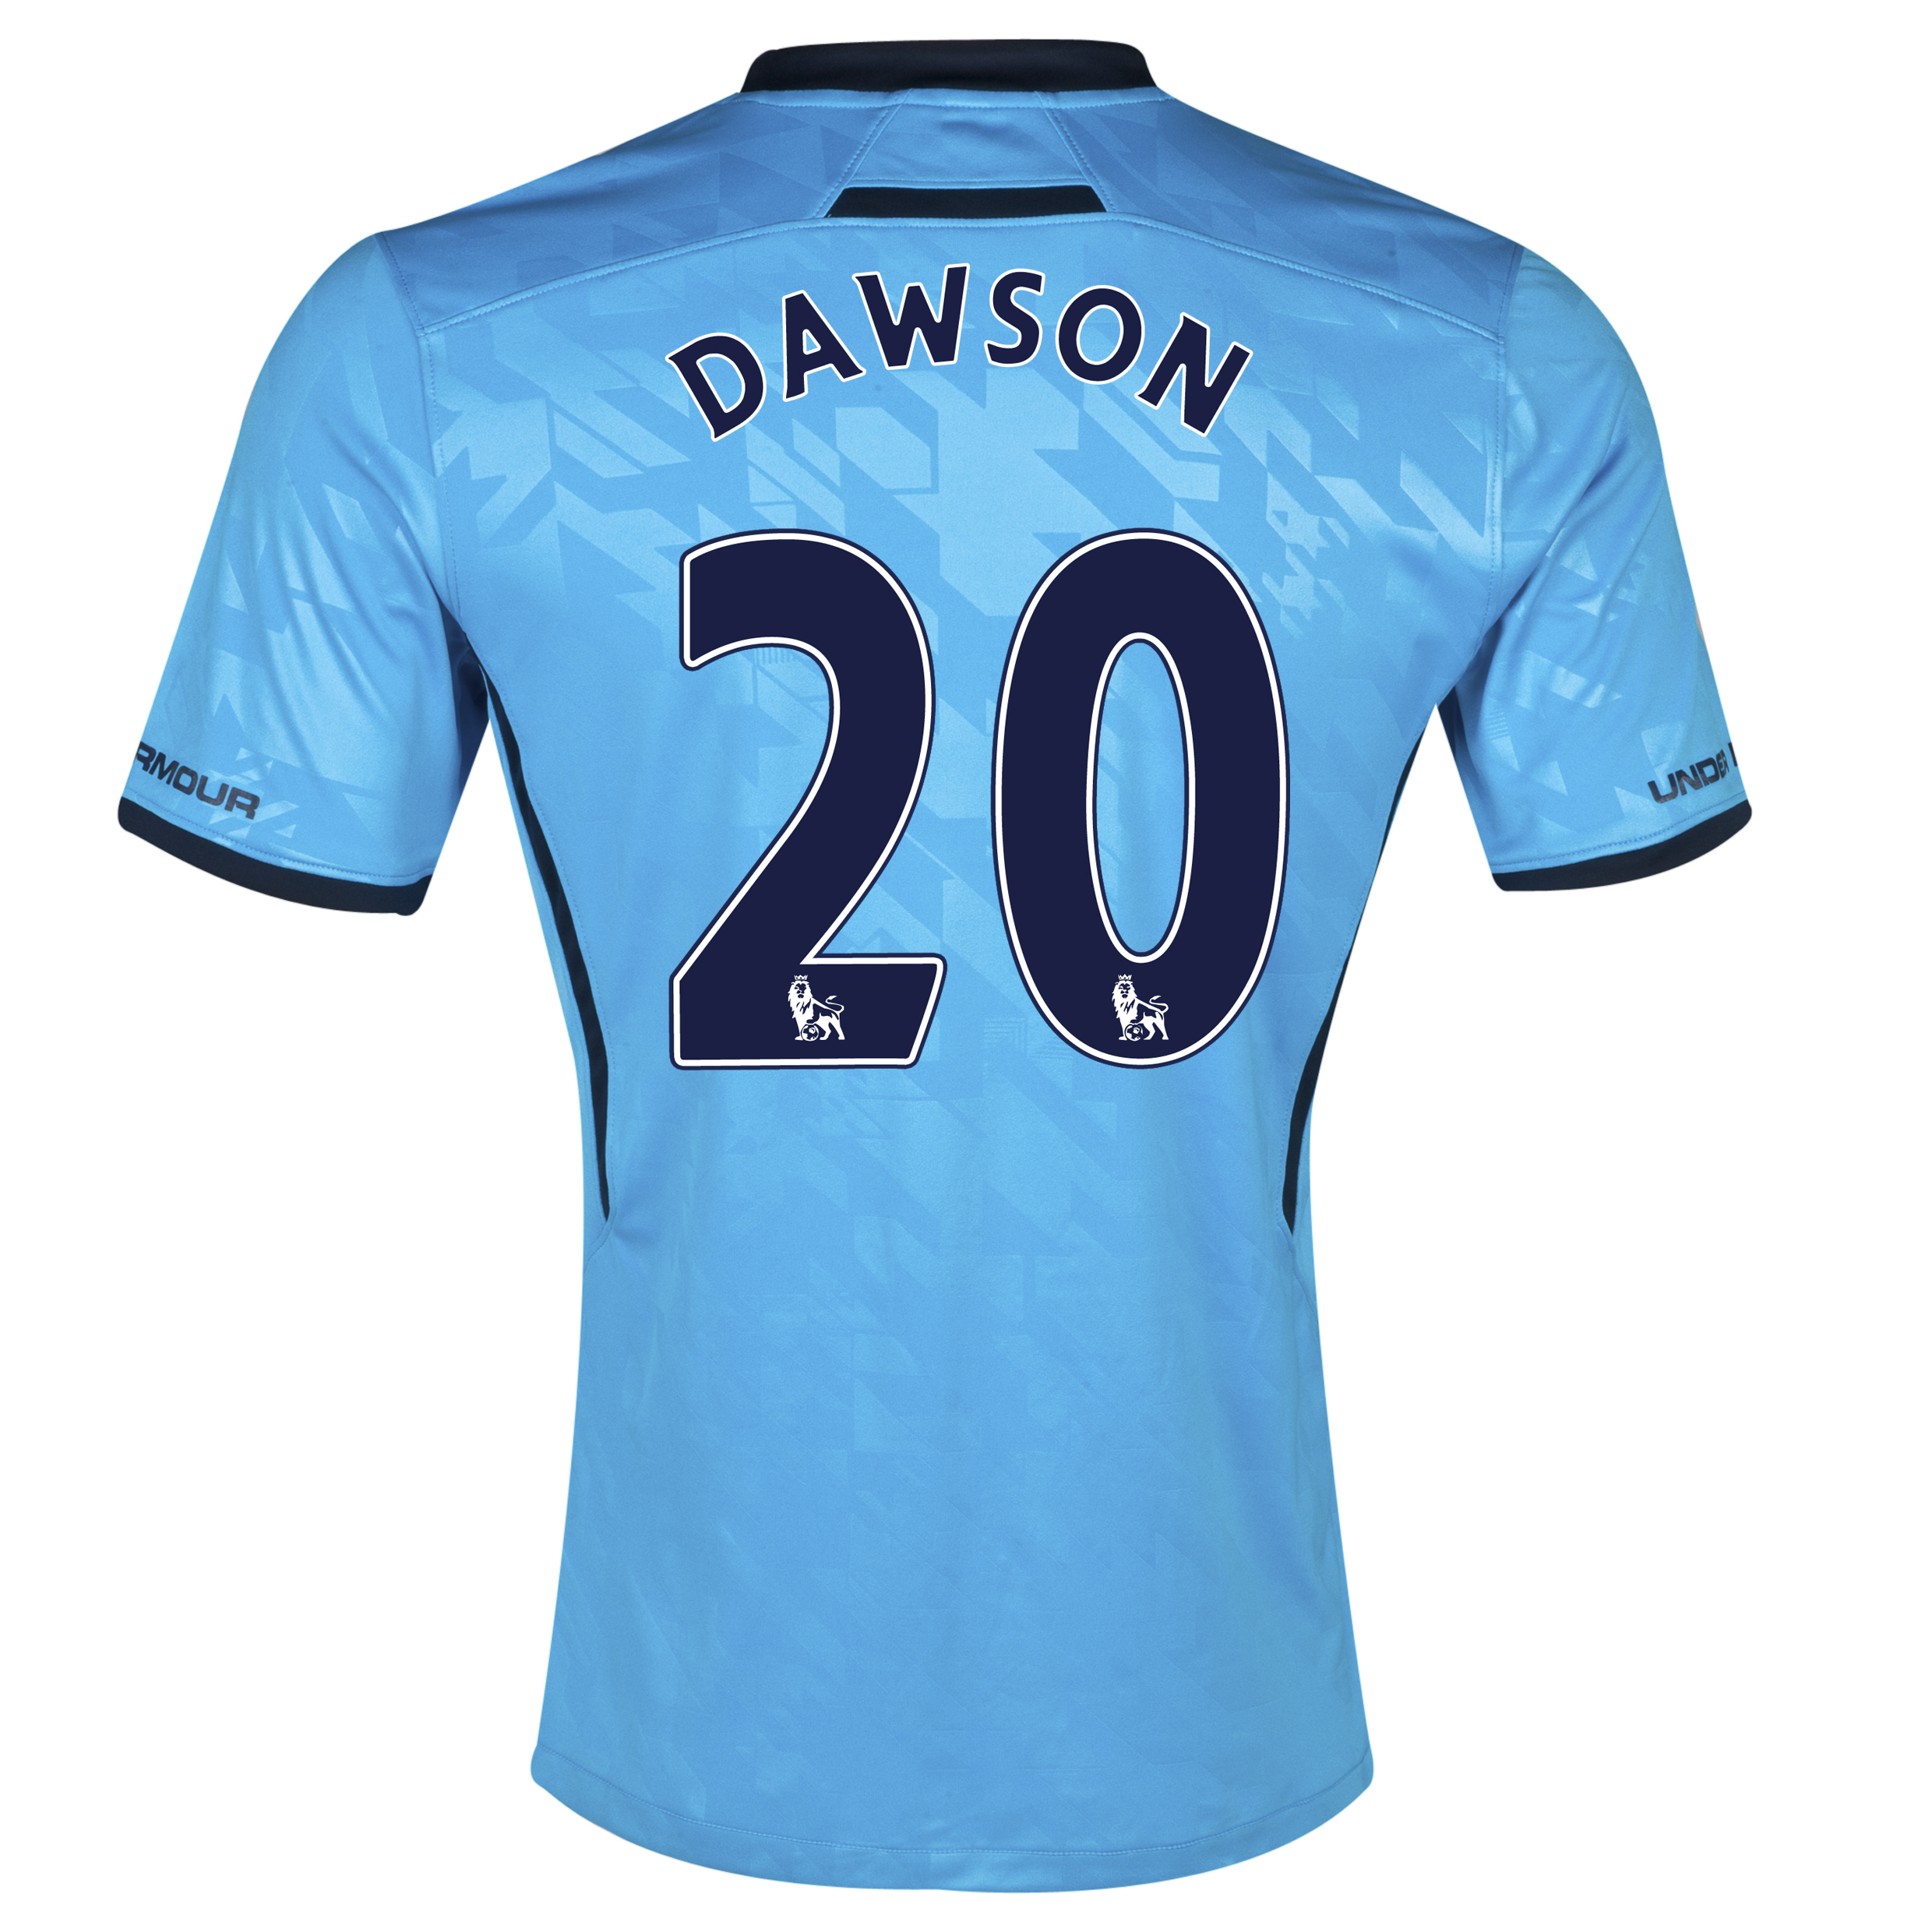 Tottenham Hotspur Away Shirt 2013/14 - Womens with Dawson 20 printing